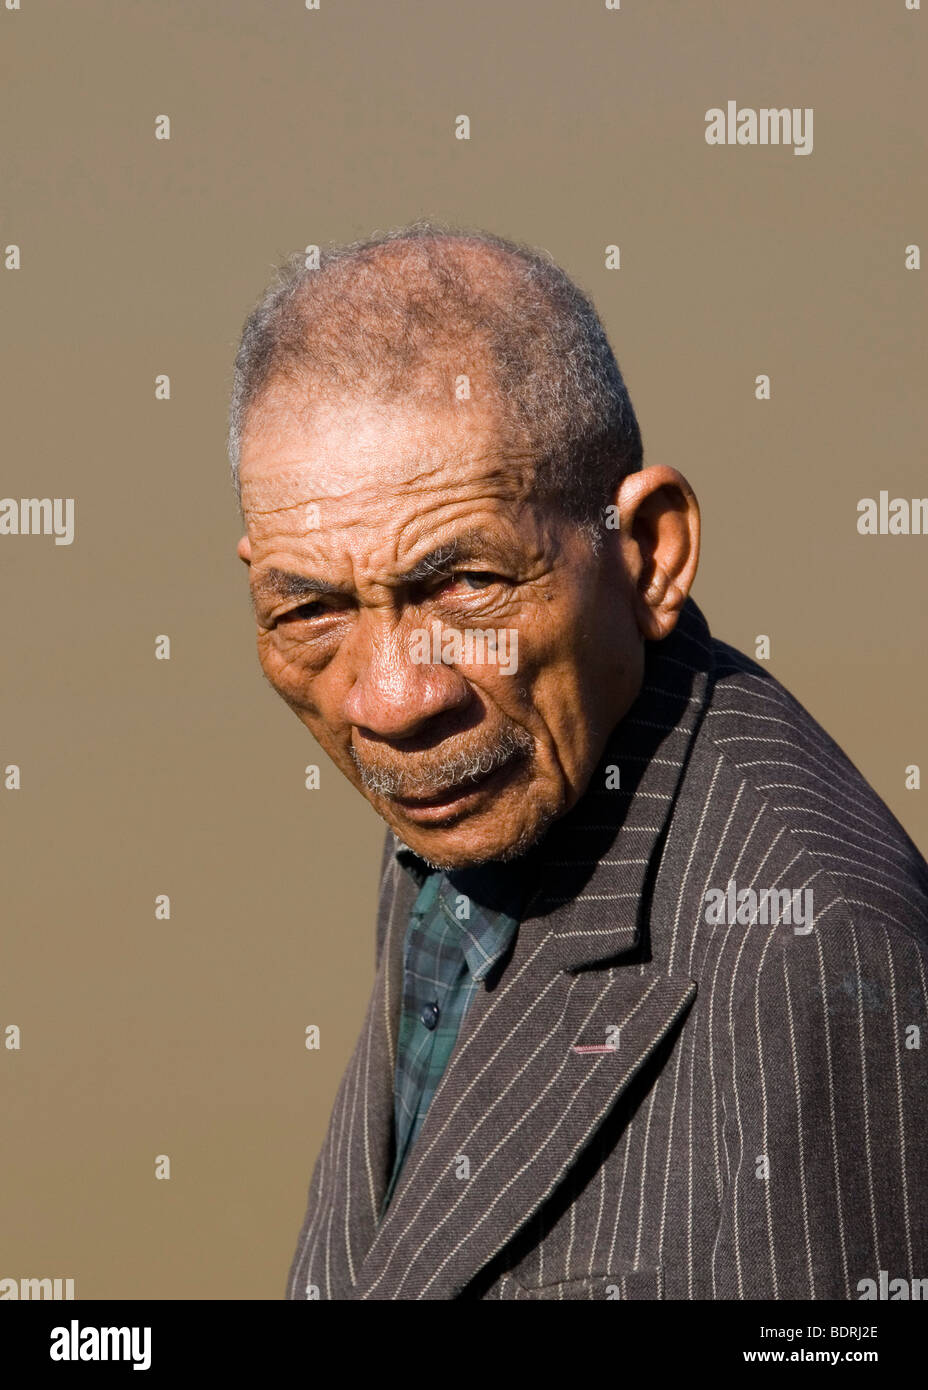 Portraet, Alter Madagasse, Madagaskar, Afrika, old man, Madagascar, Africa - Stock Image